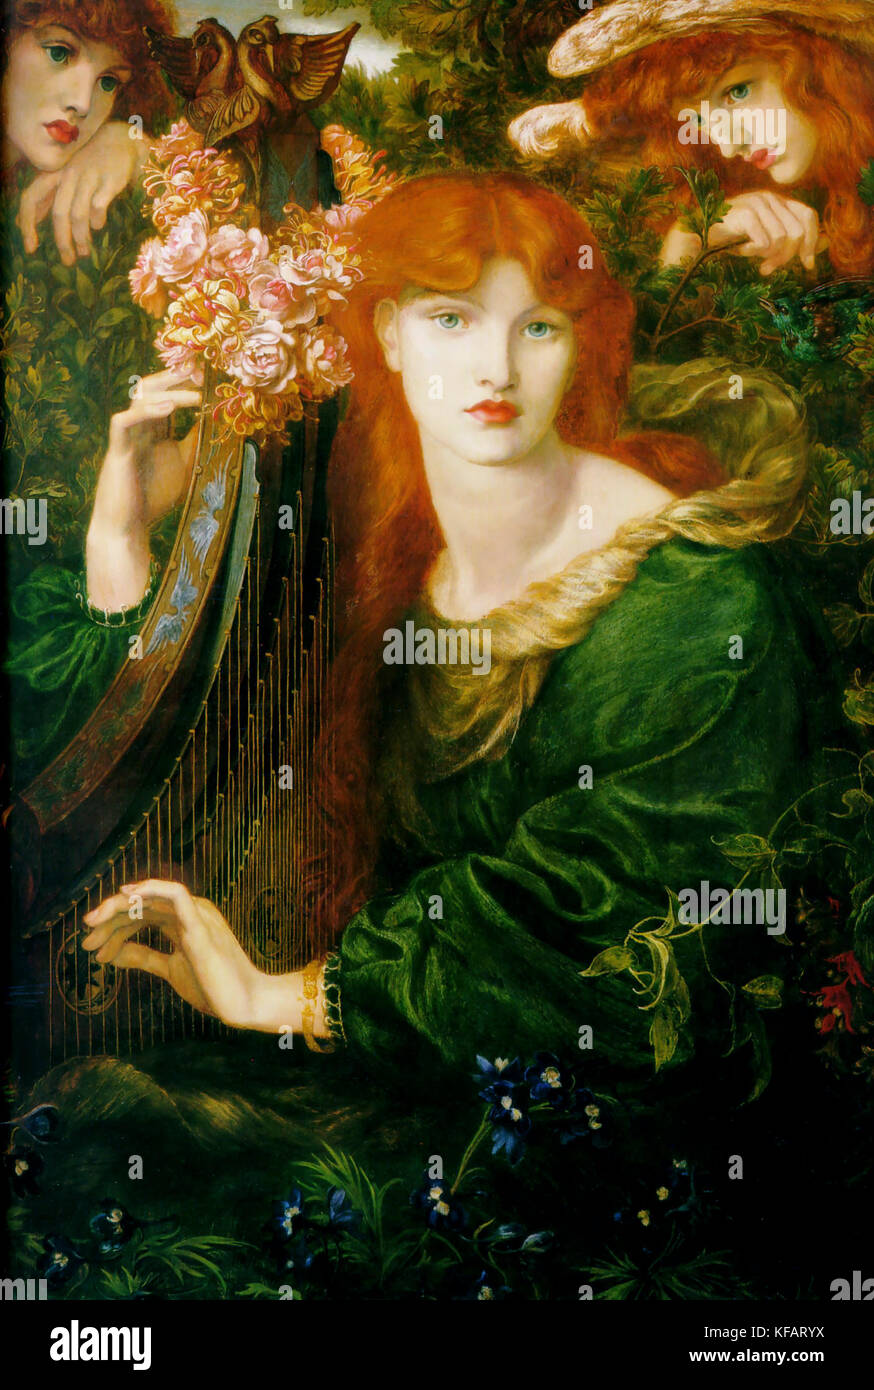 Alexa Wilding by Dante Gabriel Rossetti 1873 Stock Photo